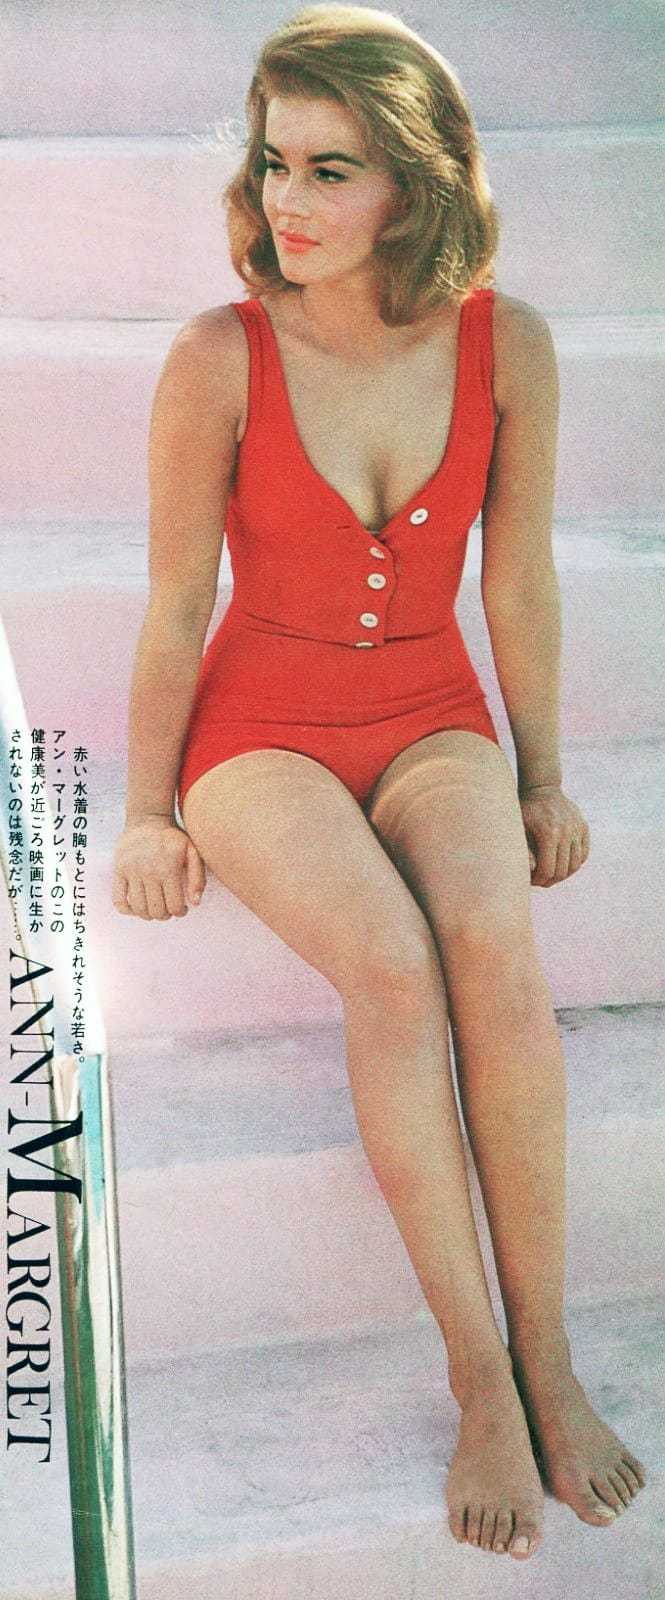 Ann-Margret hot pictures